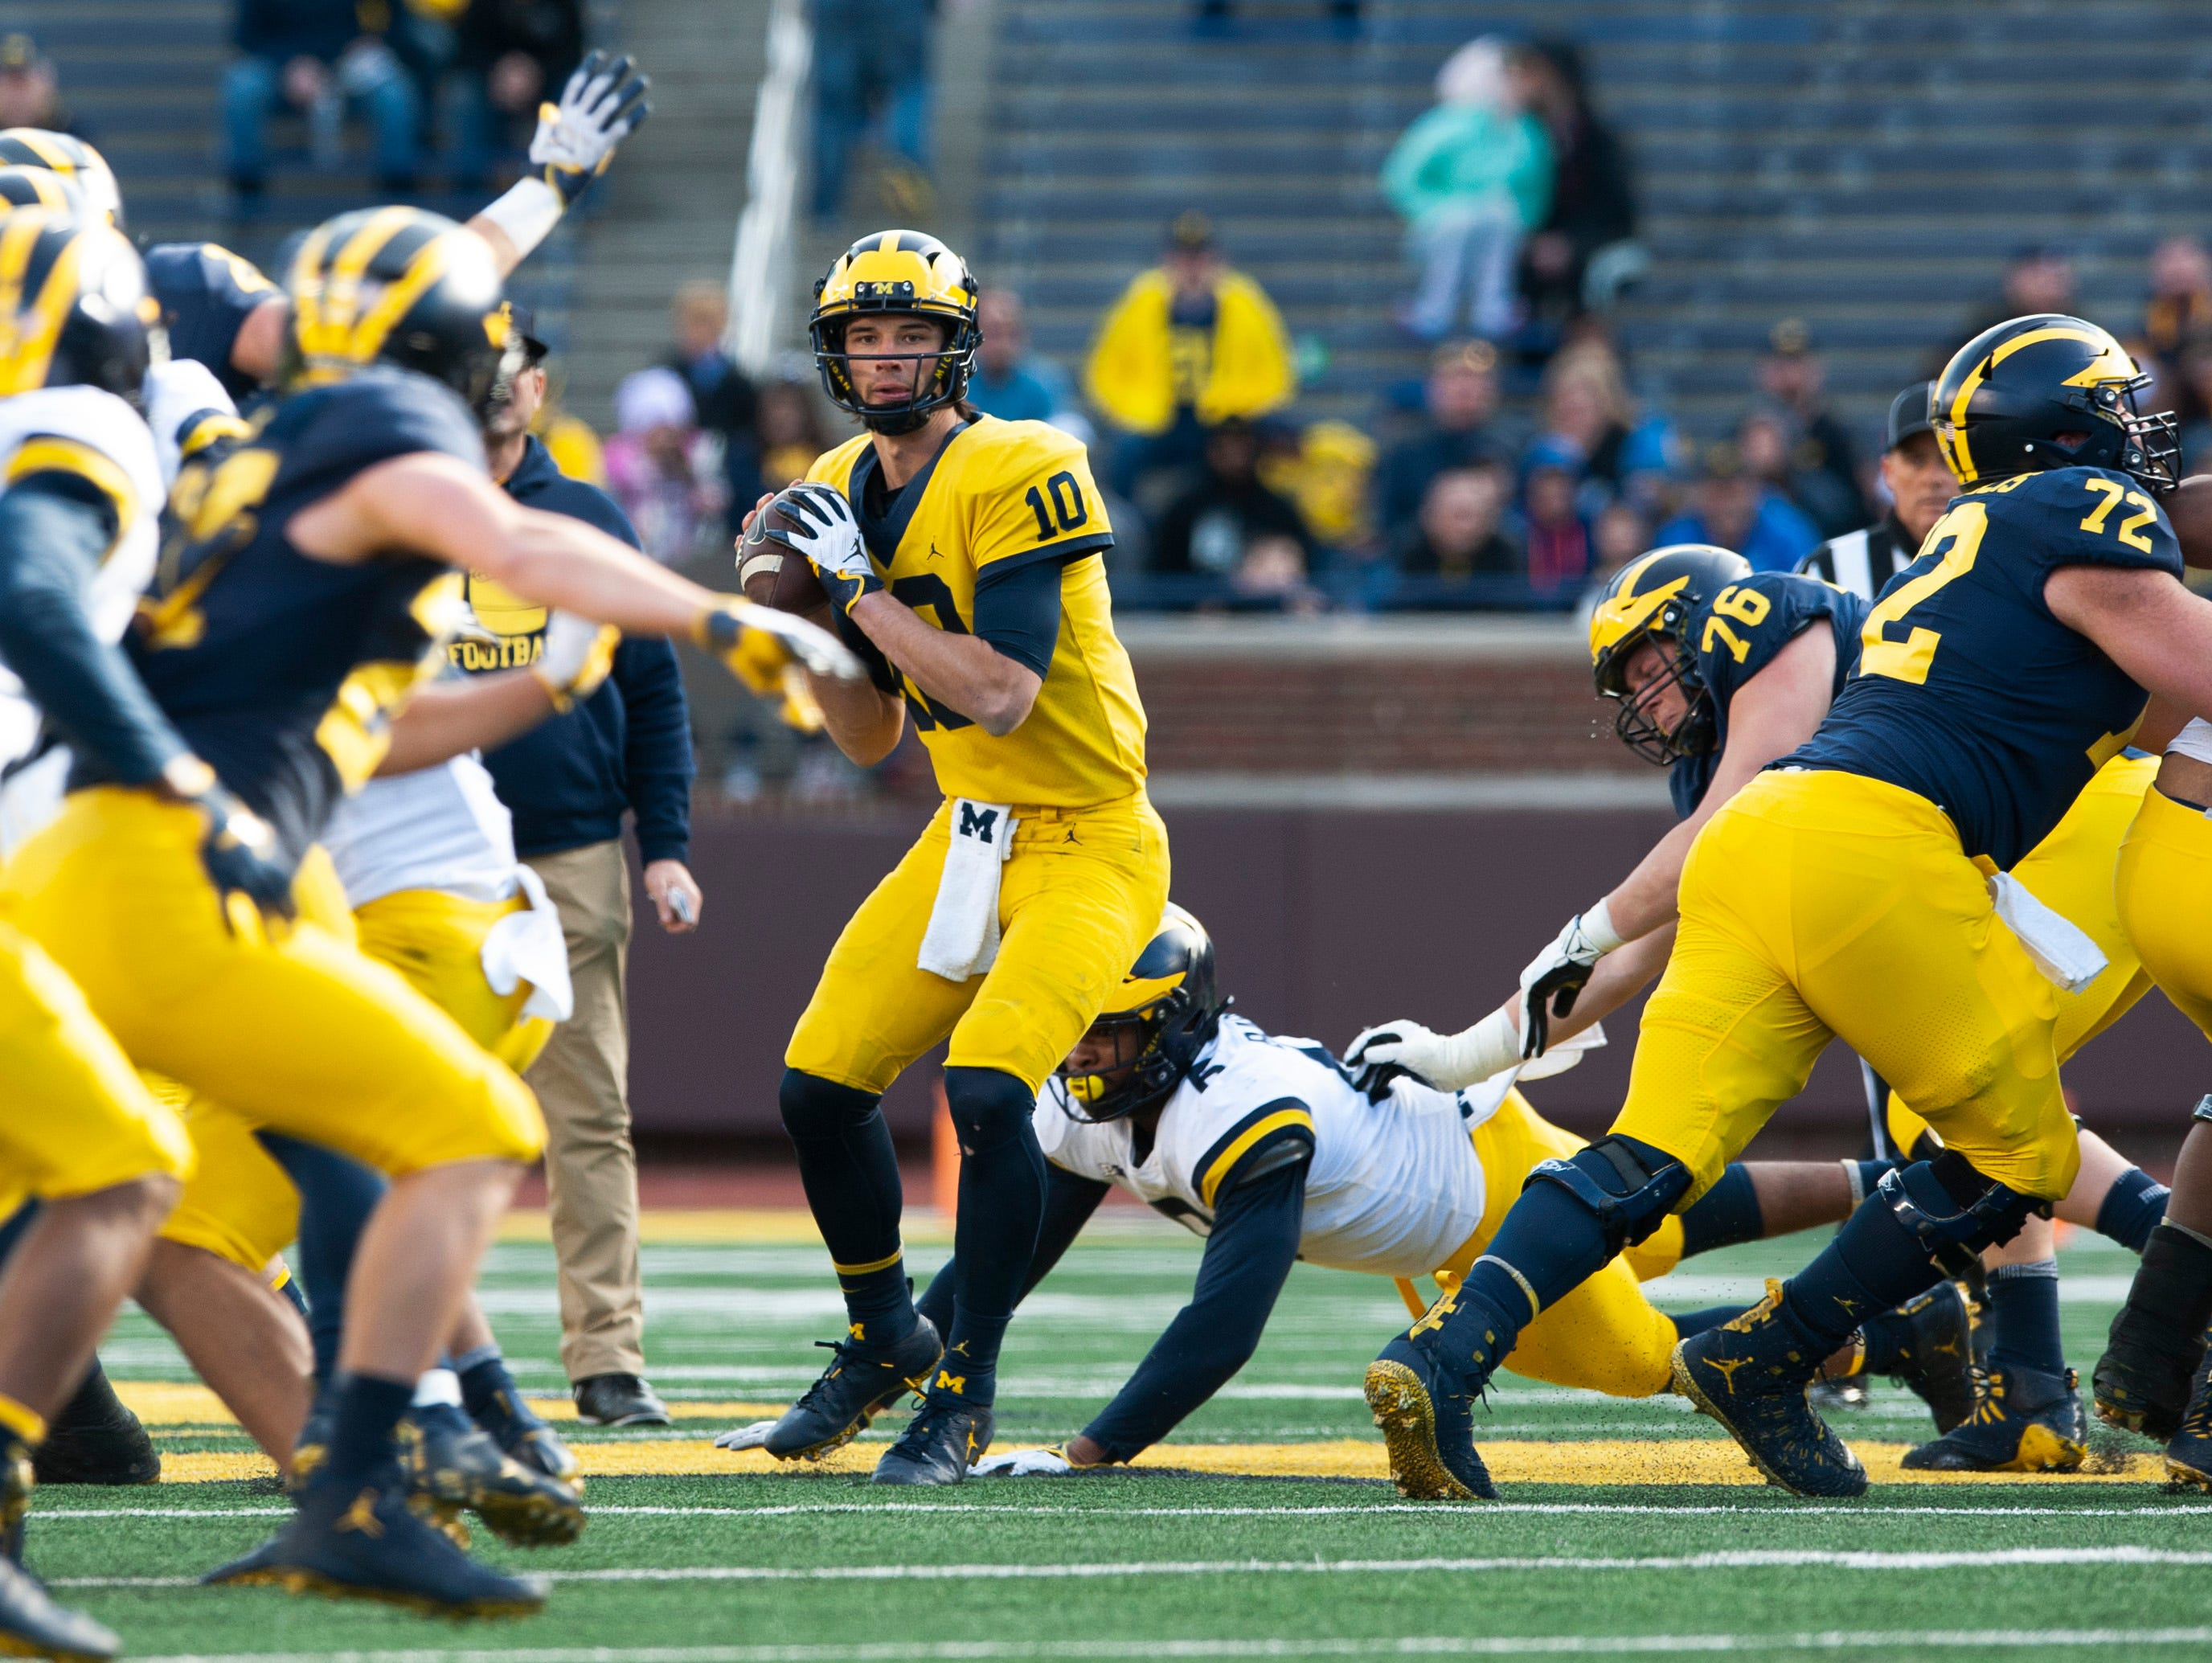 Michigan quarterback Dylan McCaffrey looks for an open receiver as the pocket collapses around him.